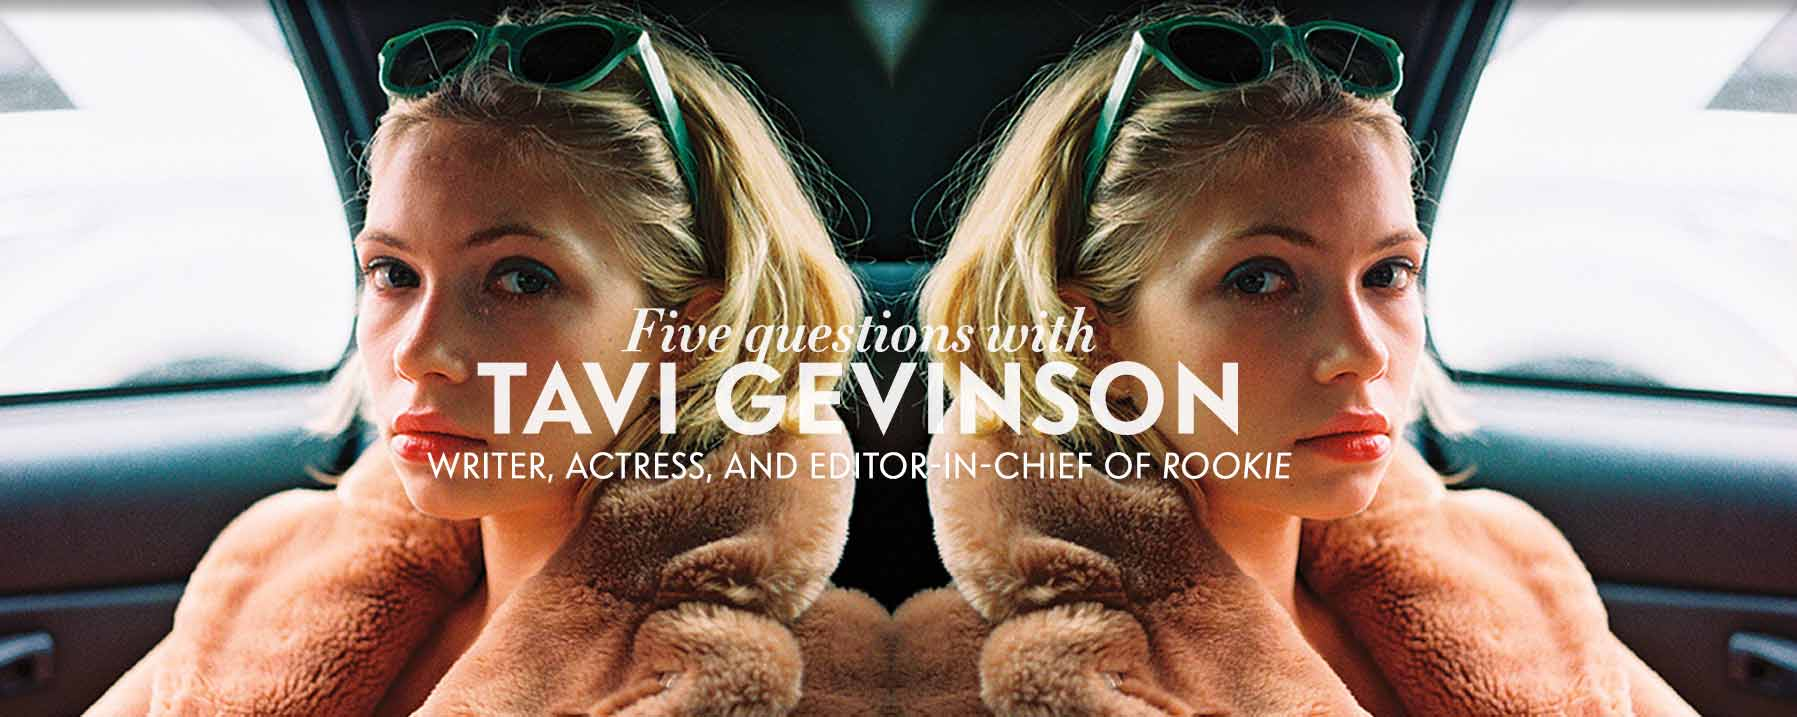 Five questions with: Tavi Gevinson